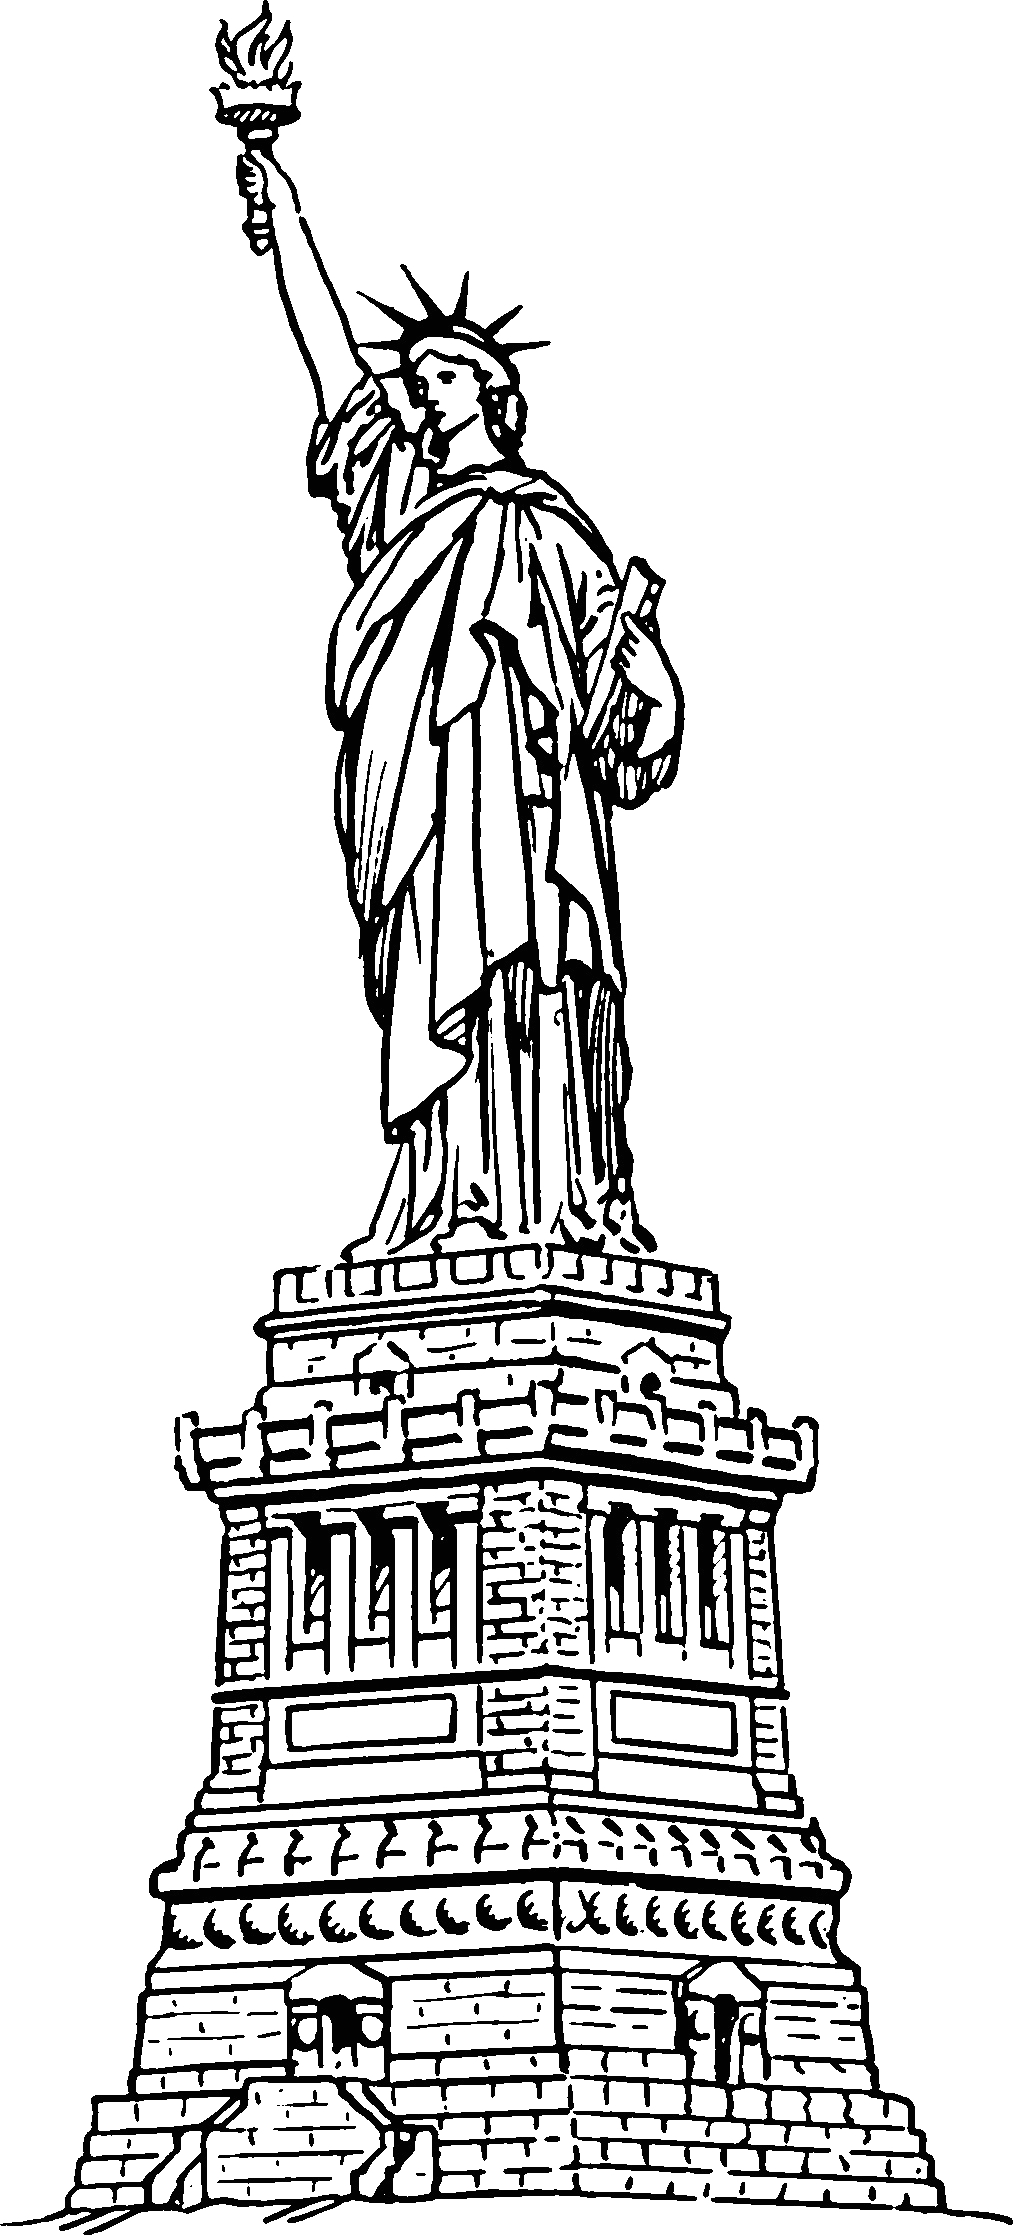 Free Printable Statue Of Liberty Coloring Pages Free Printable Statue Of Liberty Coloring Pages for Kids